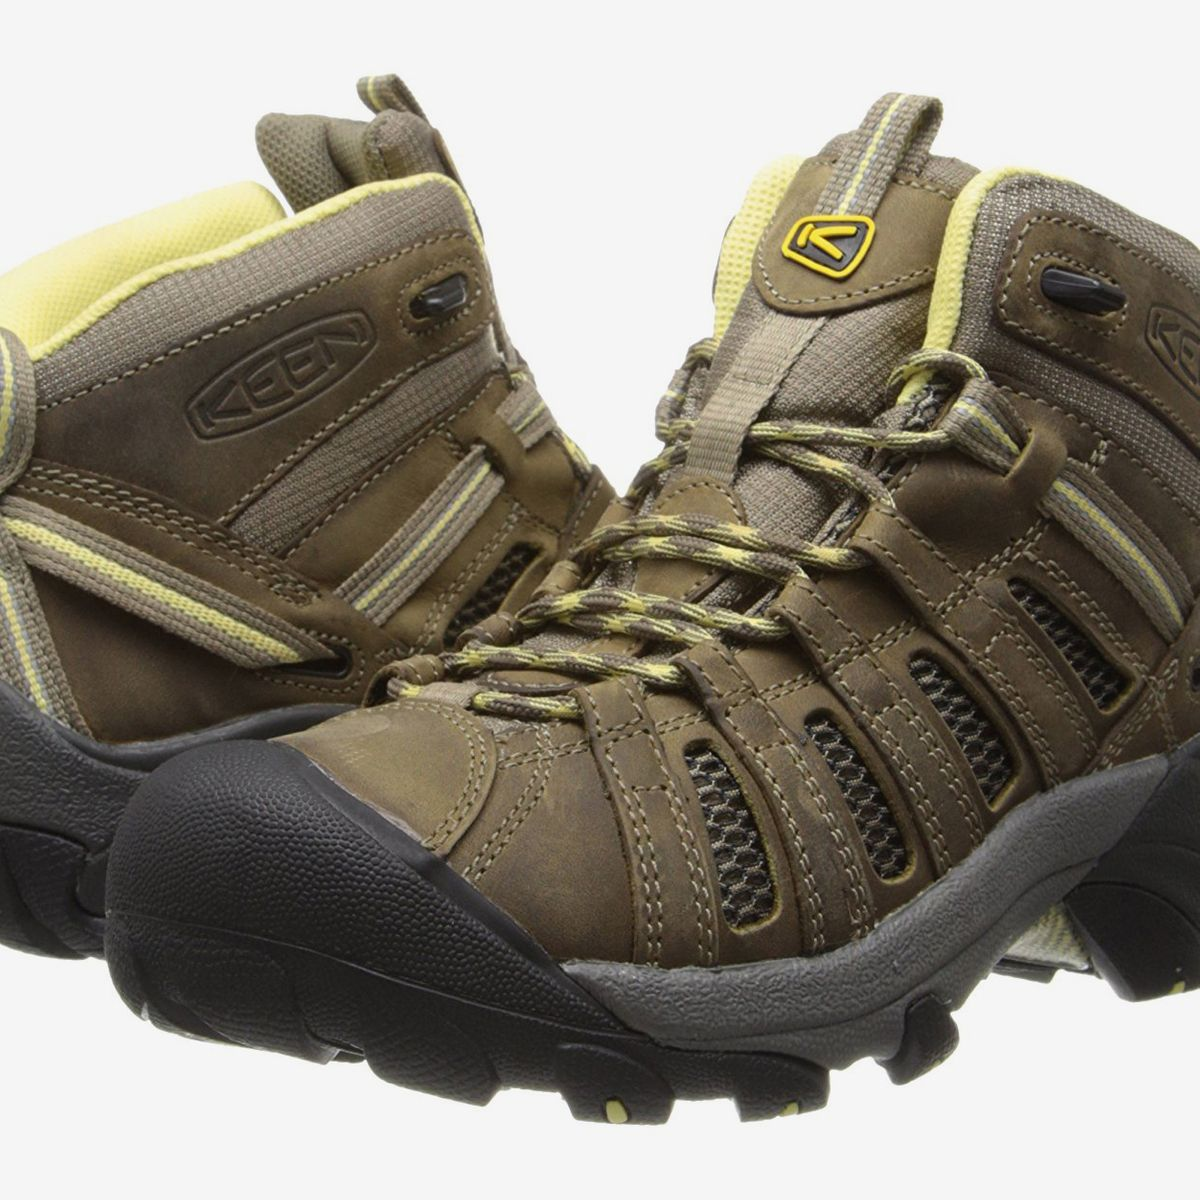 12 Best Women's Hiking Boots 2020 | The